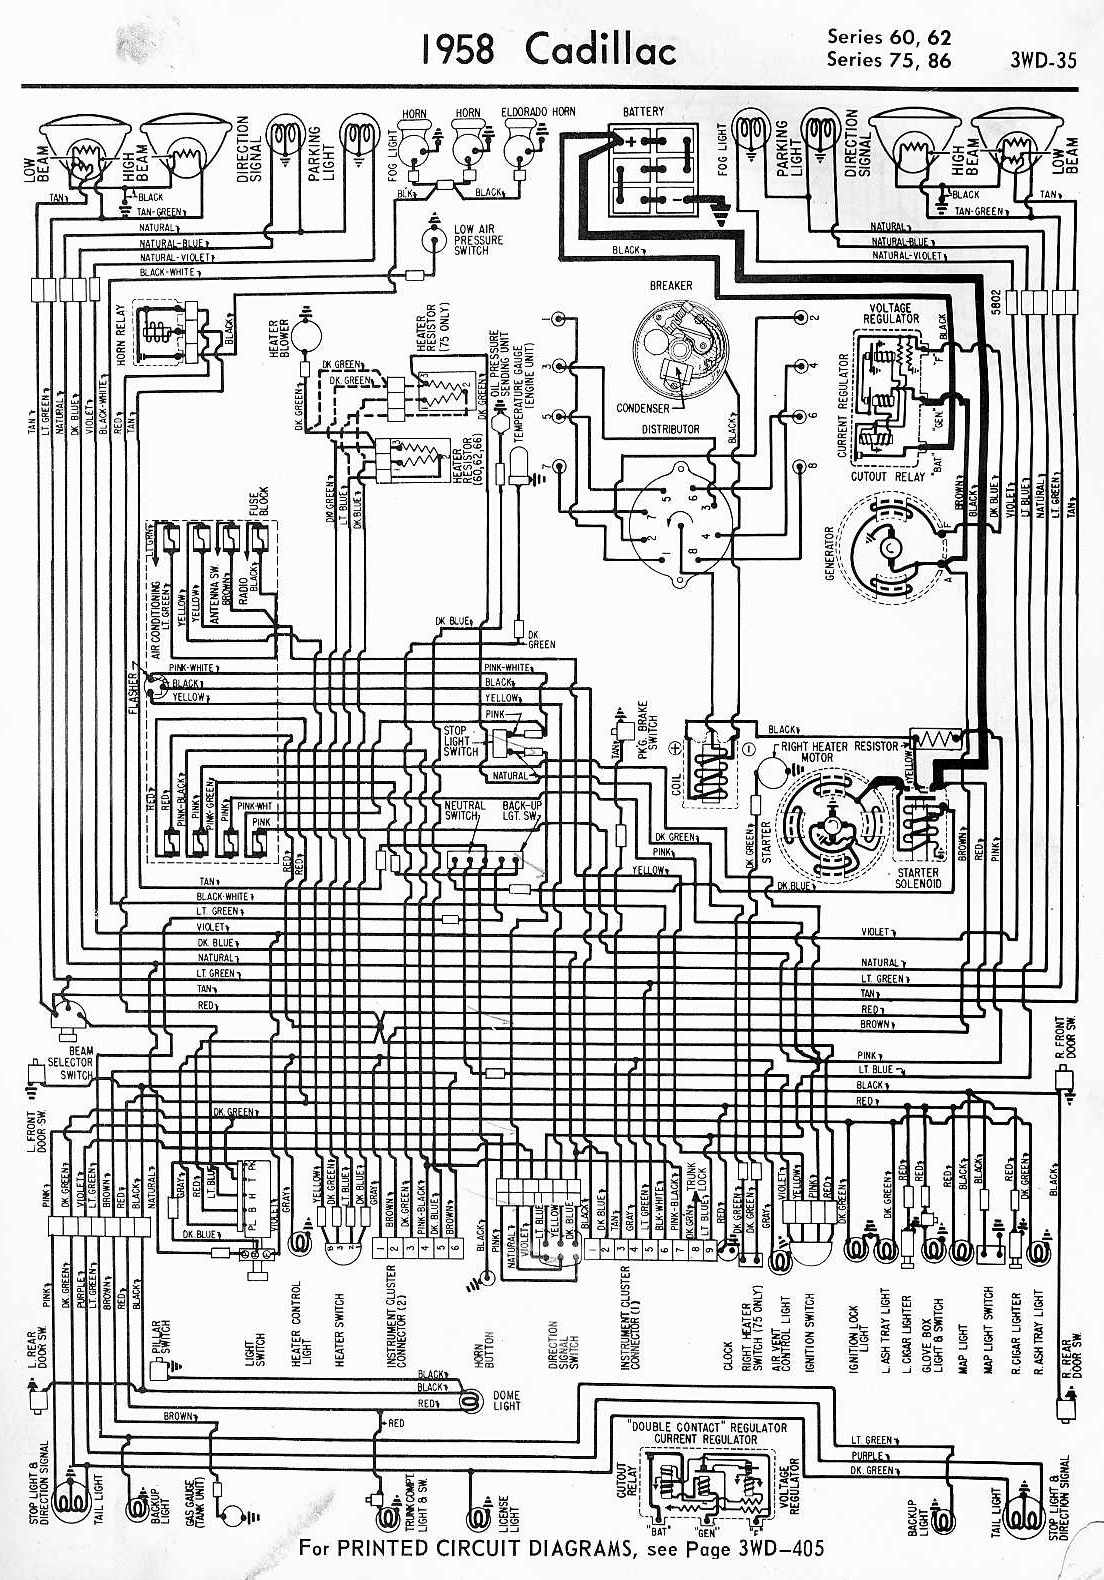 small resolution of 62 cadillac wiring diagram wiring diagram data62 cadillac wiring diagram wiring diagram g9 52 cadillac wiring